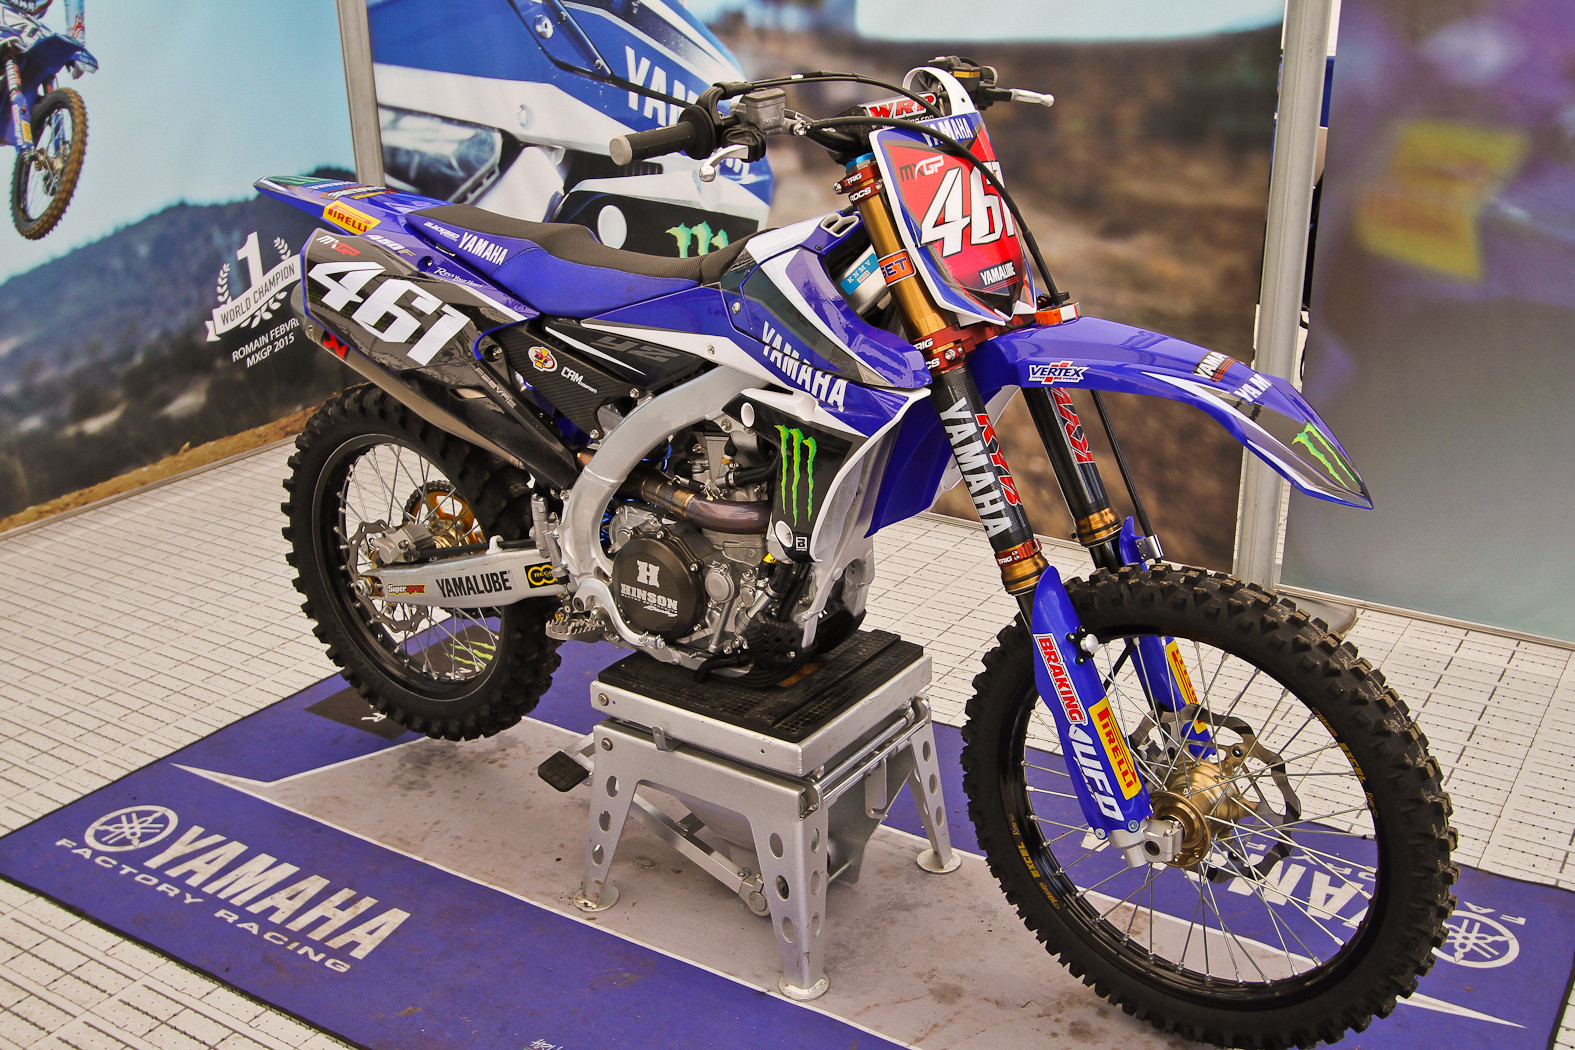 Romain Febvre - In the Pits: MXGP of Europe - Motocross Pictures - Vital MX